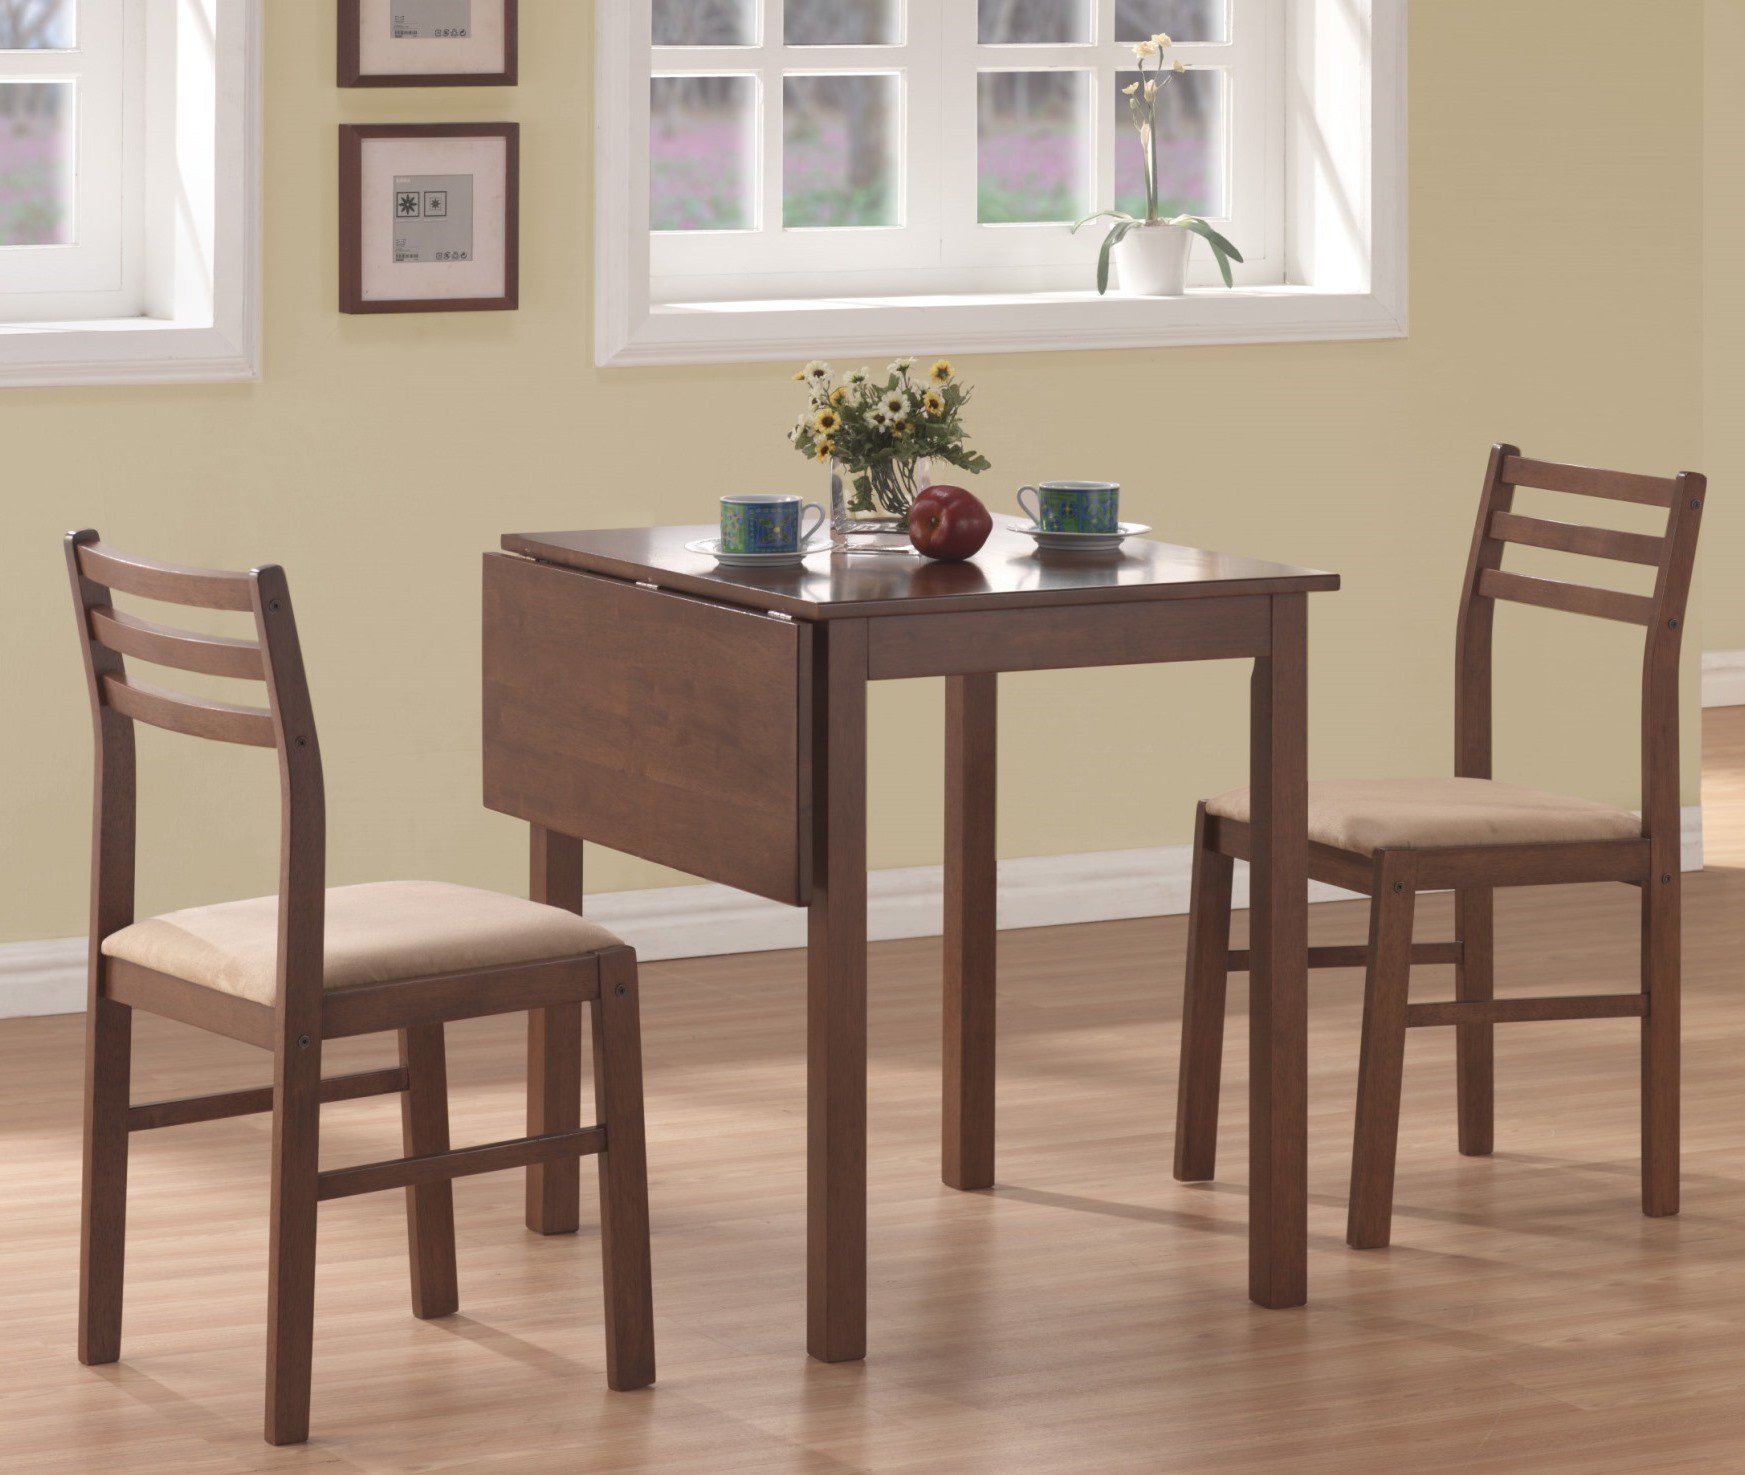 1079 Walnut 3pcs Drop Leaf Dining Set From Monarch I 1079